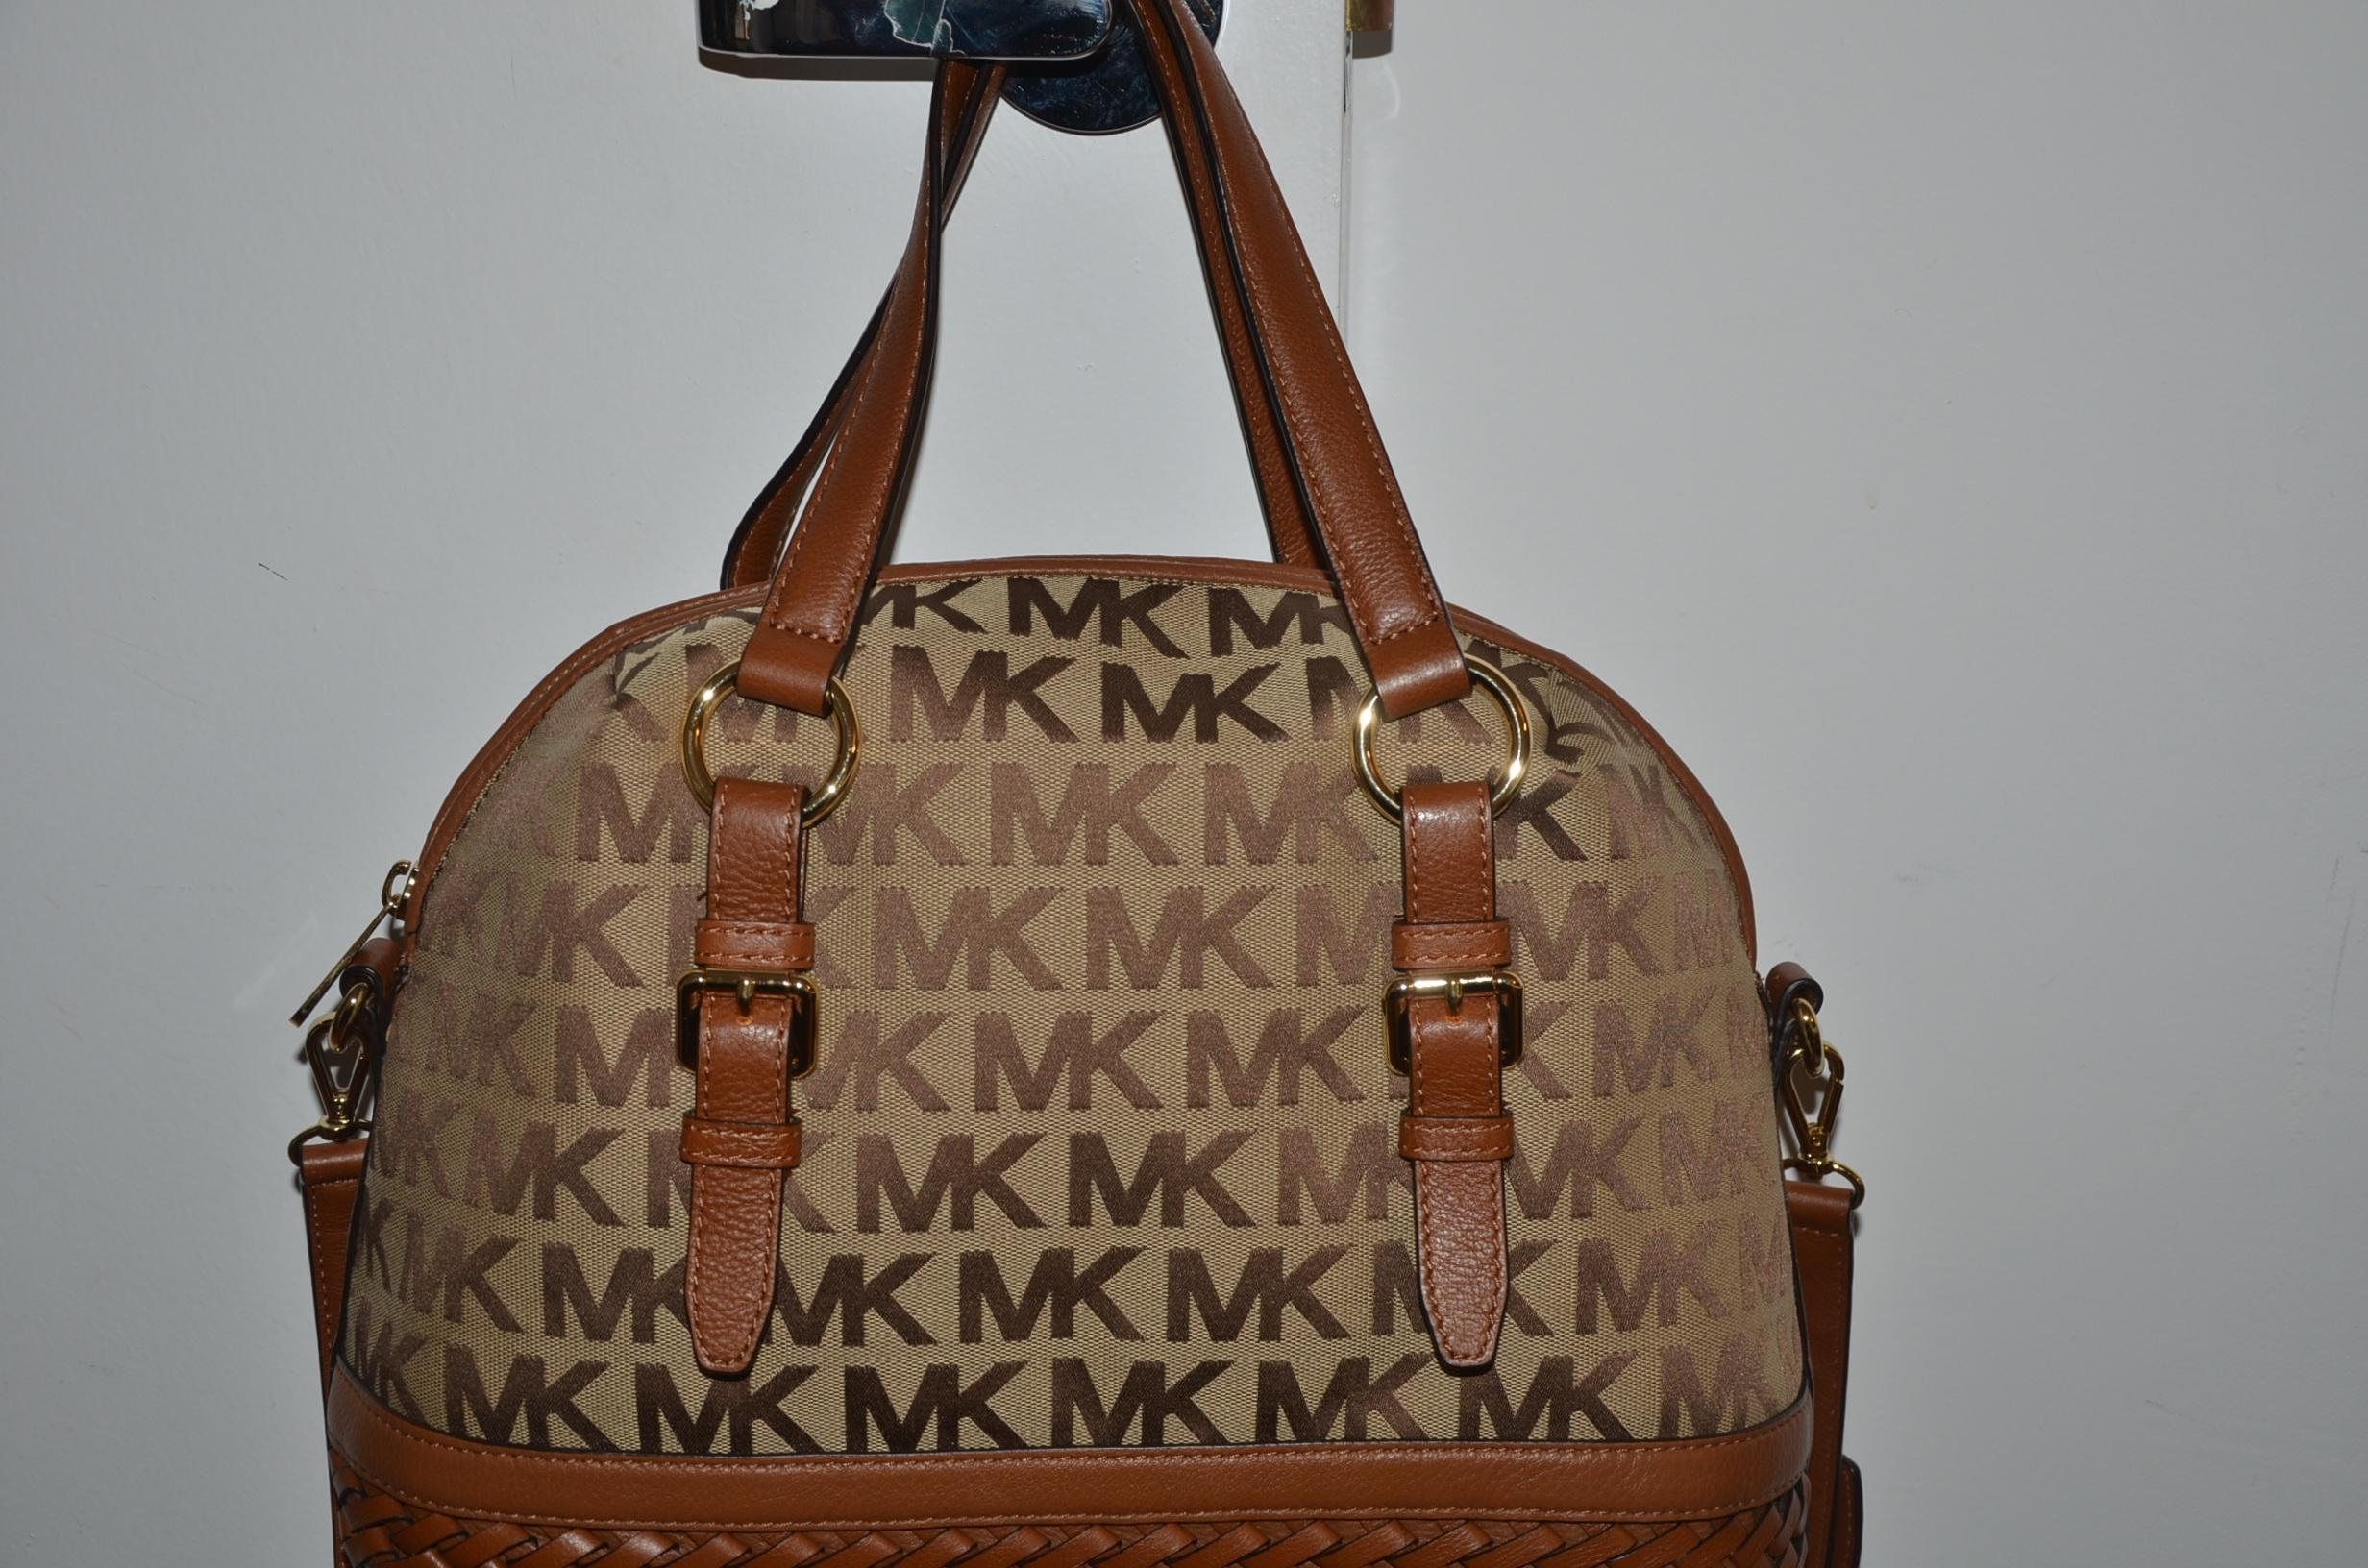 ef4f6eac8c4a ... inexpensive michael kors gladstone purse tote beige ebony luggage  jacquard leather satchel tradesy 47865 8adda